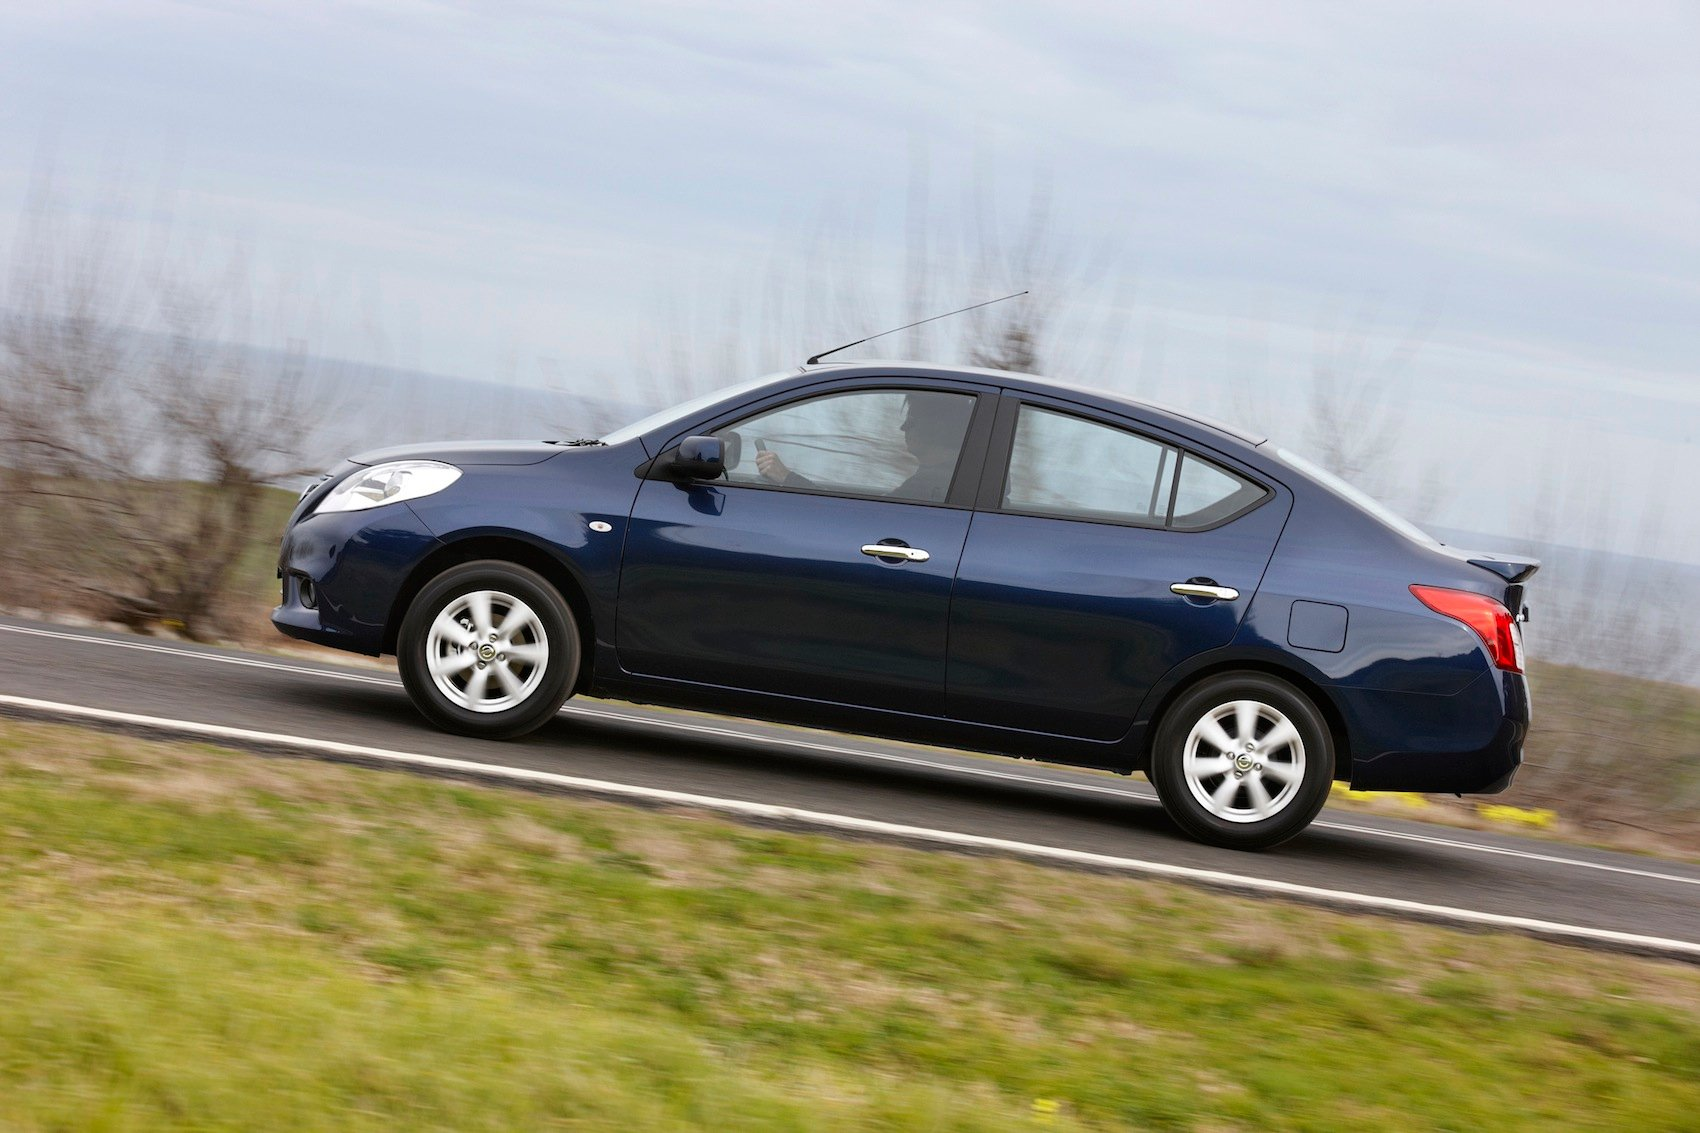 Nissan Almera Review - photos | CarAdvice